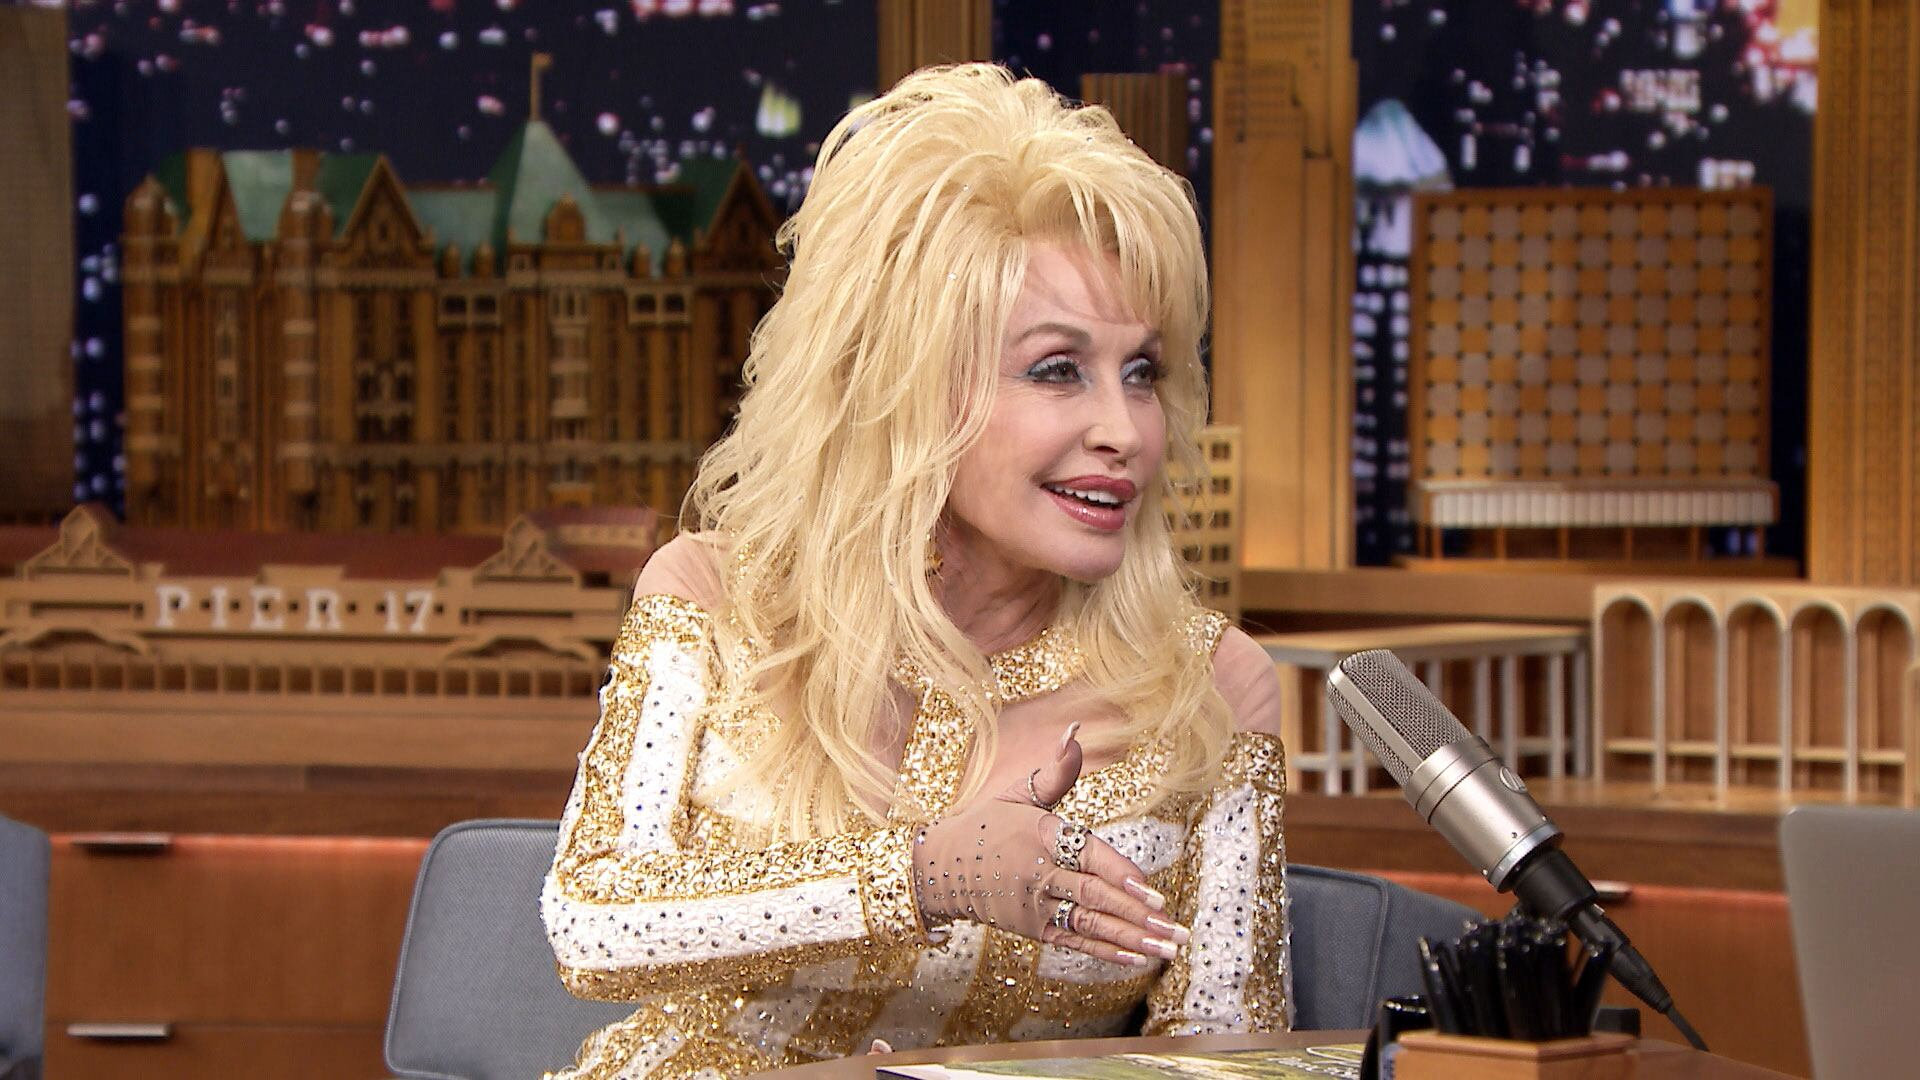 Dolly Parton Cooks with Her Squad and RV Camps with Her Husband